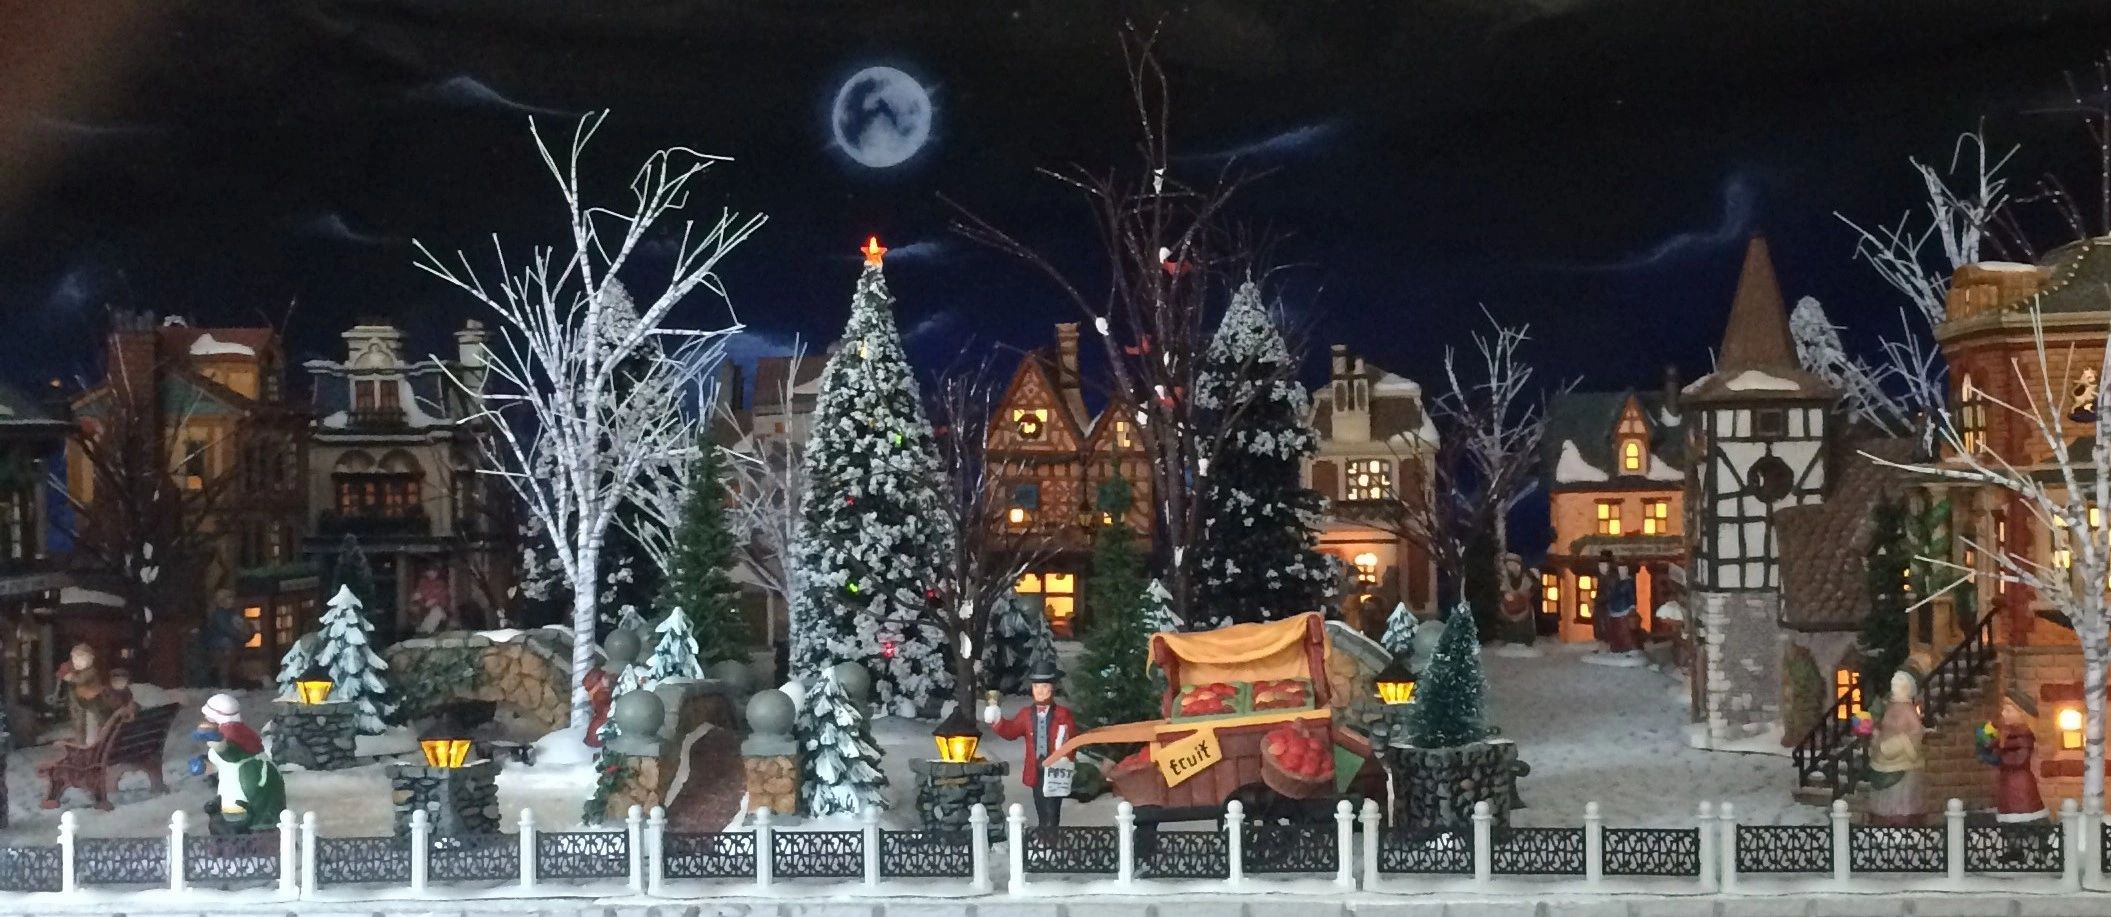 Landscape Displays Dept 56 Christmas Halloween